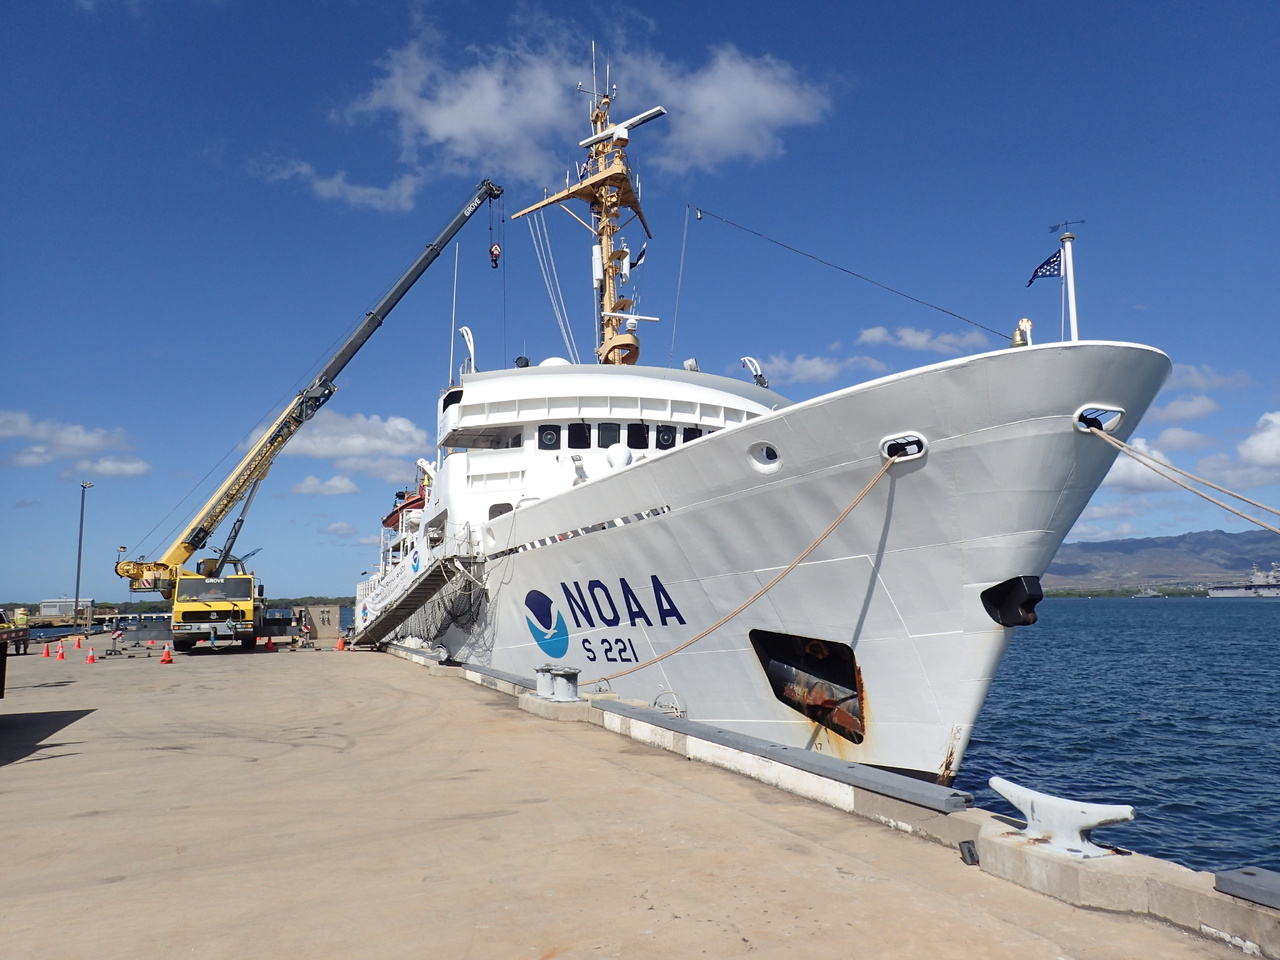 Leg three of our mission has ended and we are preparing for the fourth leg, which will take us up to the Papahānaumokuākea Marine National Monument. We are saying goodbye and thank you to the <i>Sette</i>, and moving onto the NOAA Ship <i>Rainier</i>. The <i>Rainier</i> came all the way from Alaska to help us out! The <i>Rainier</i> is a hydrographic survey vessel that maps the ocean floor, but they are taking a break from their mapping to assist in our survey mission. <i>Photo: NOAA Fisheries/James Morioka. </i>